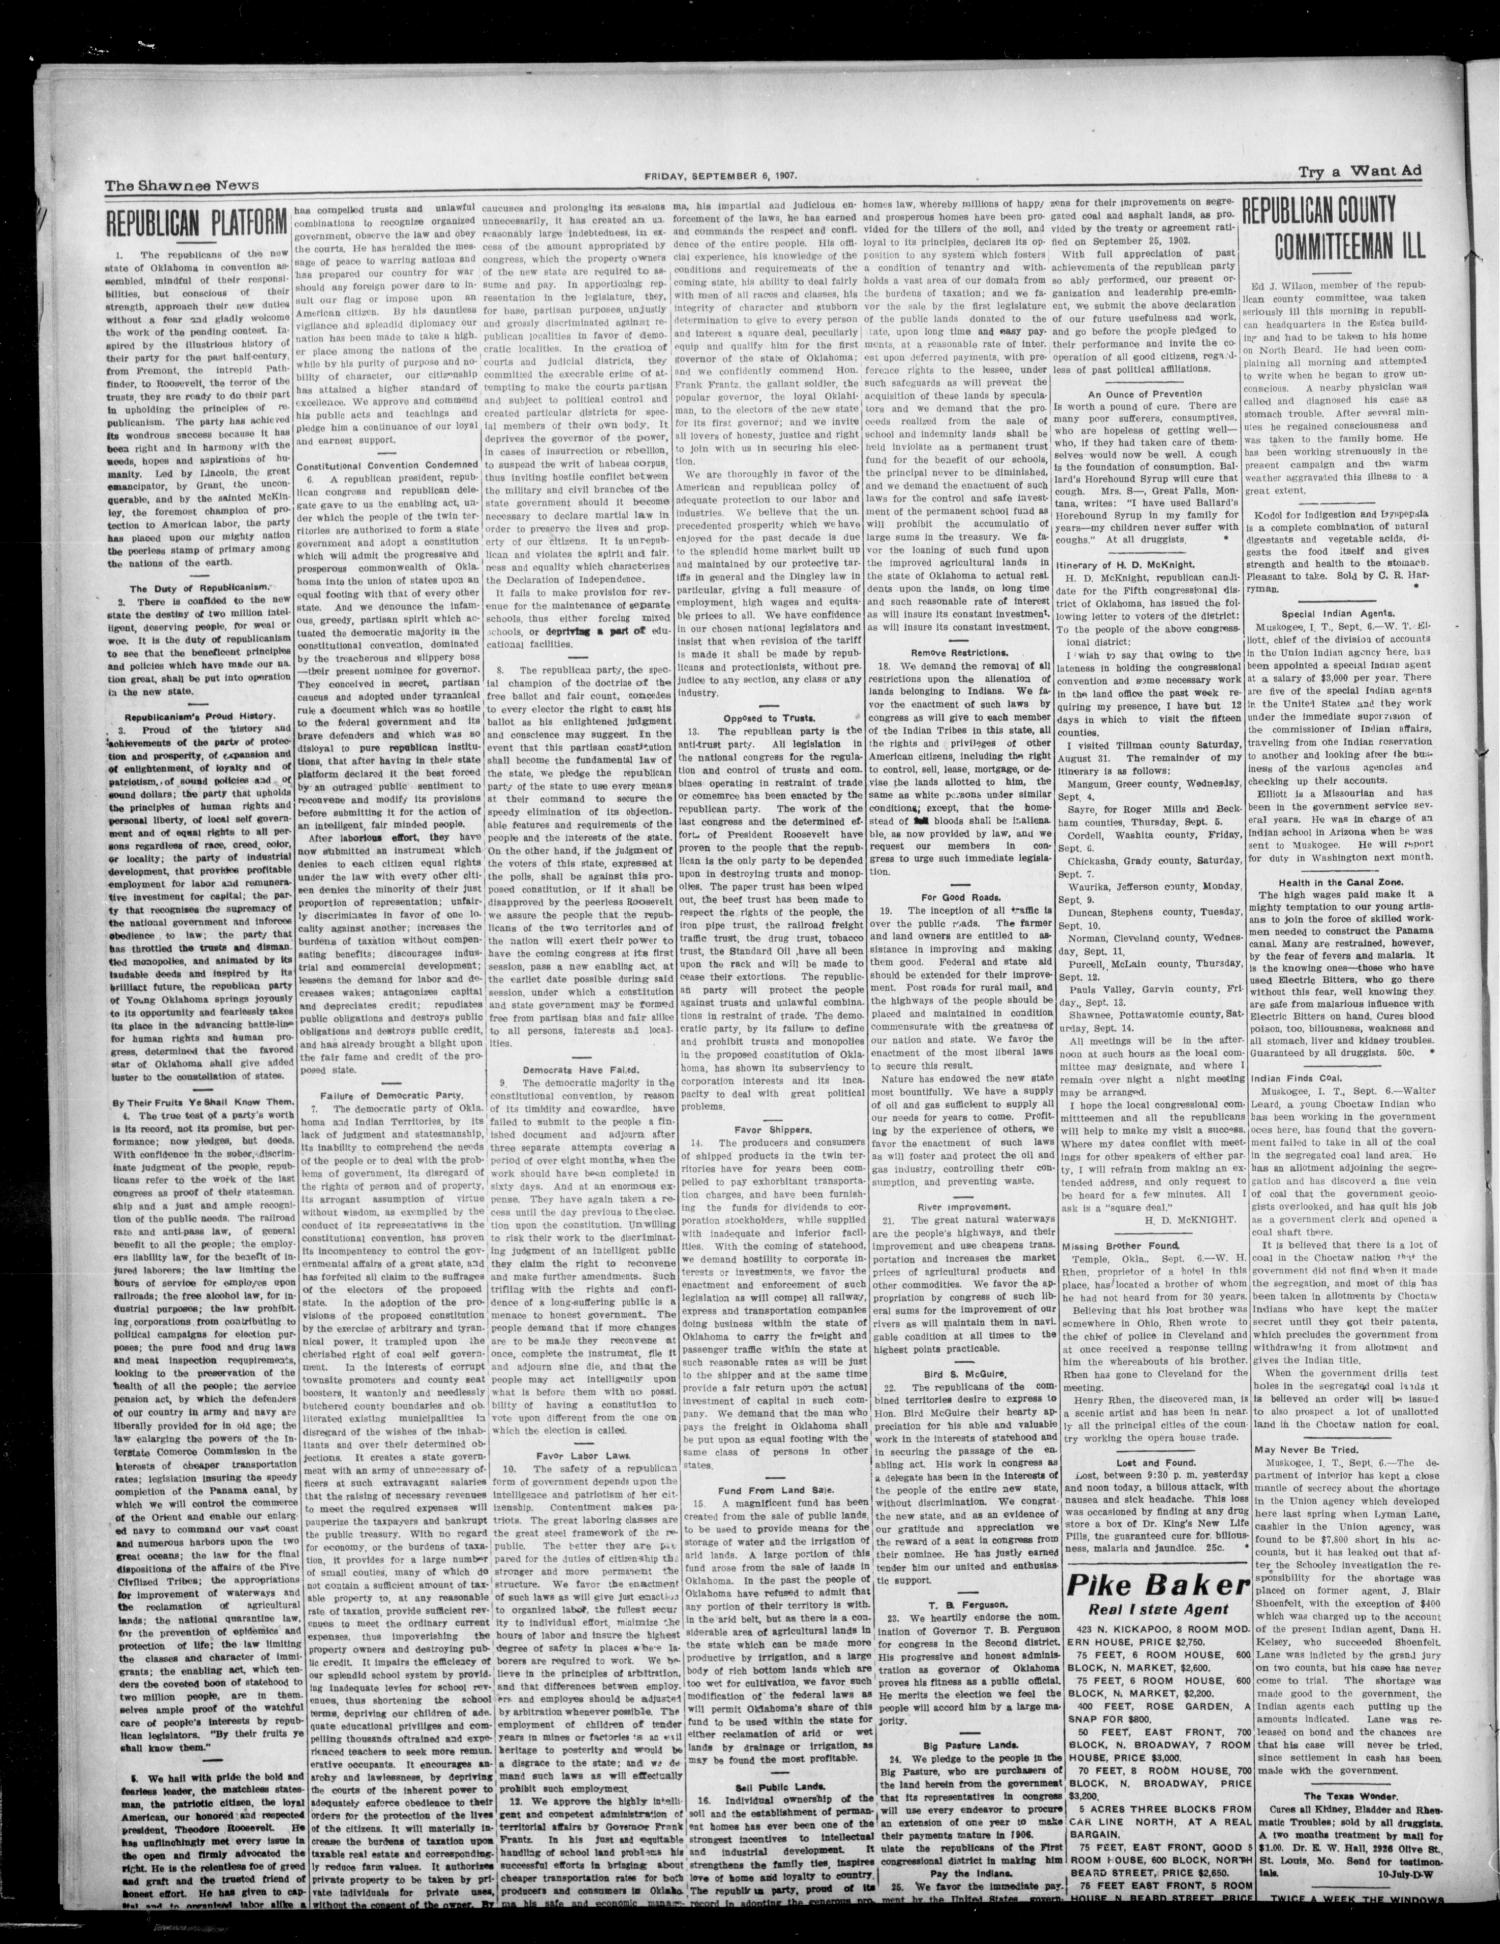 The Shawnee News. (Shawnee, Okla.), Vol. 10, No. 223, Ed. 1 Friday, September 6, 1907                                                                                                      [Sequence #]: 4 of 8